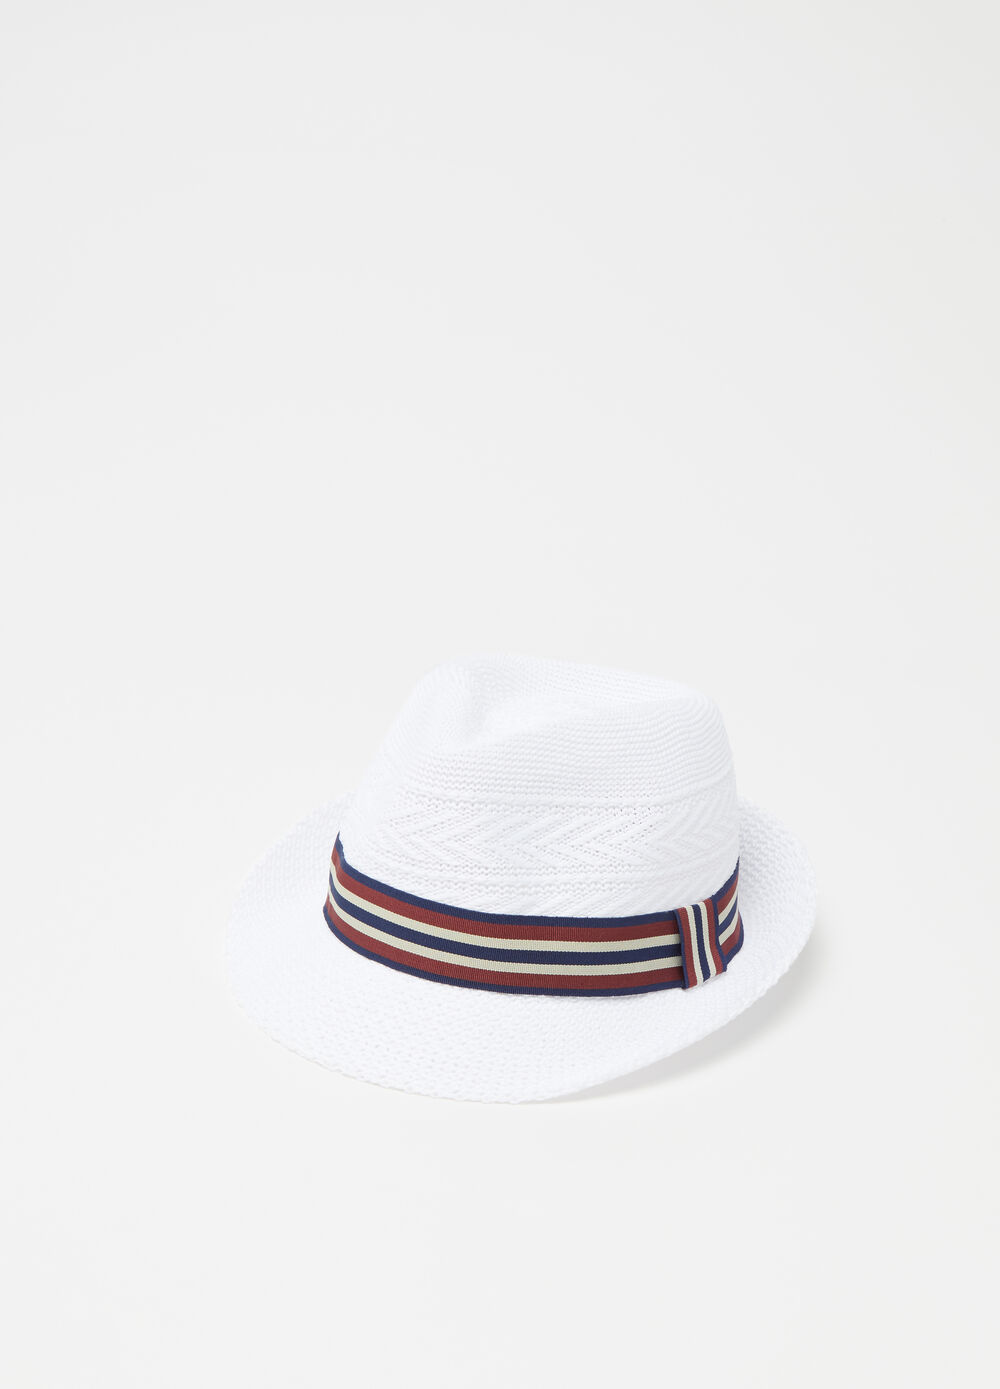 Knitted fedora hat